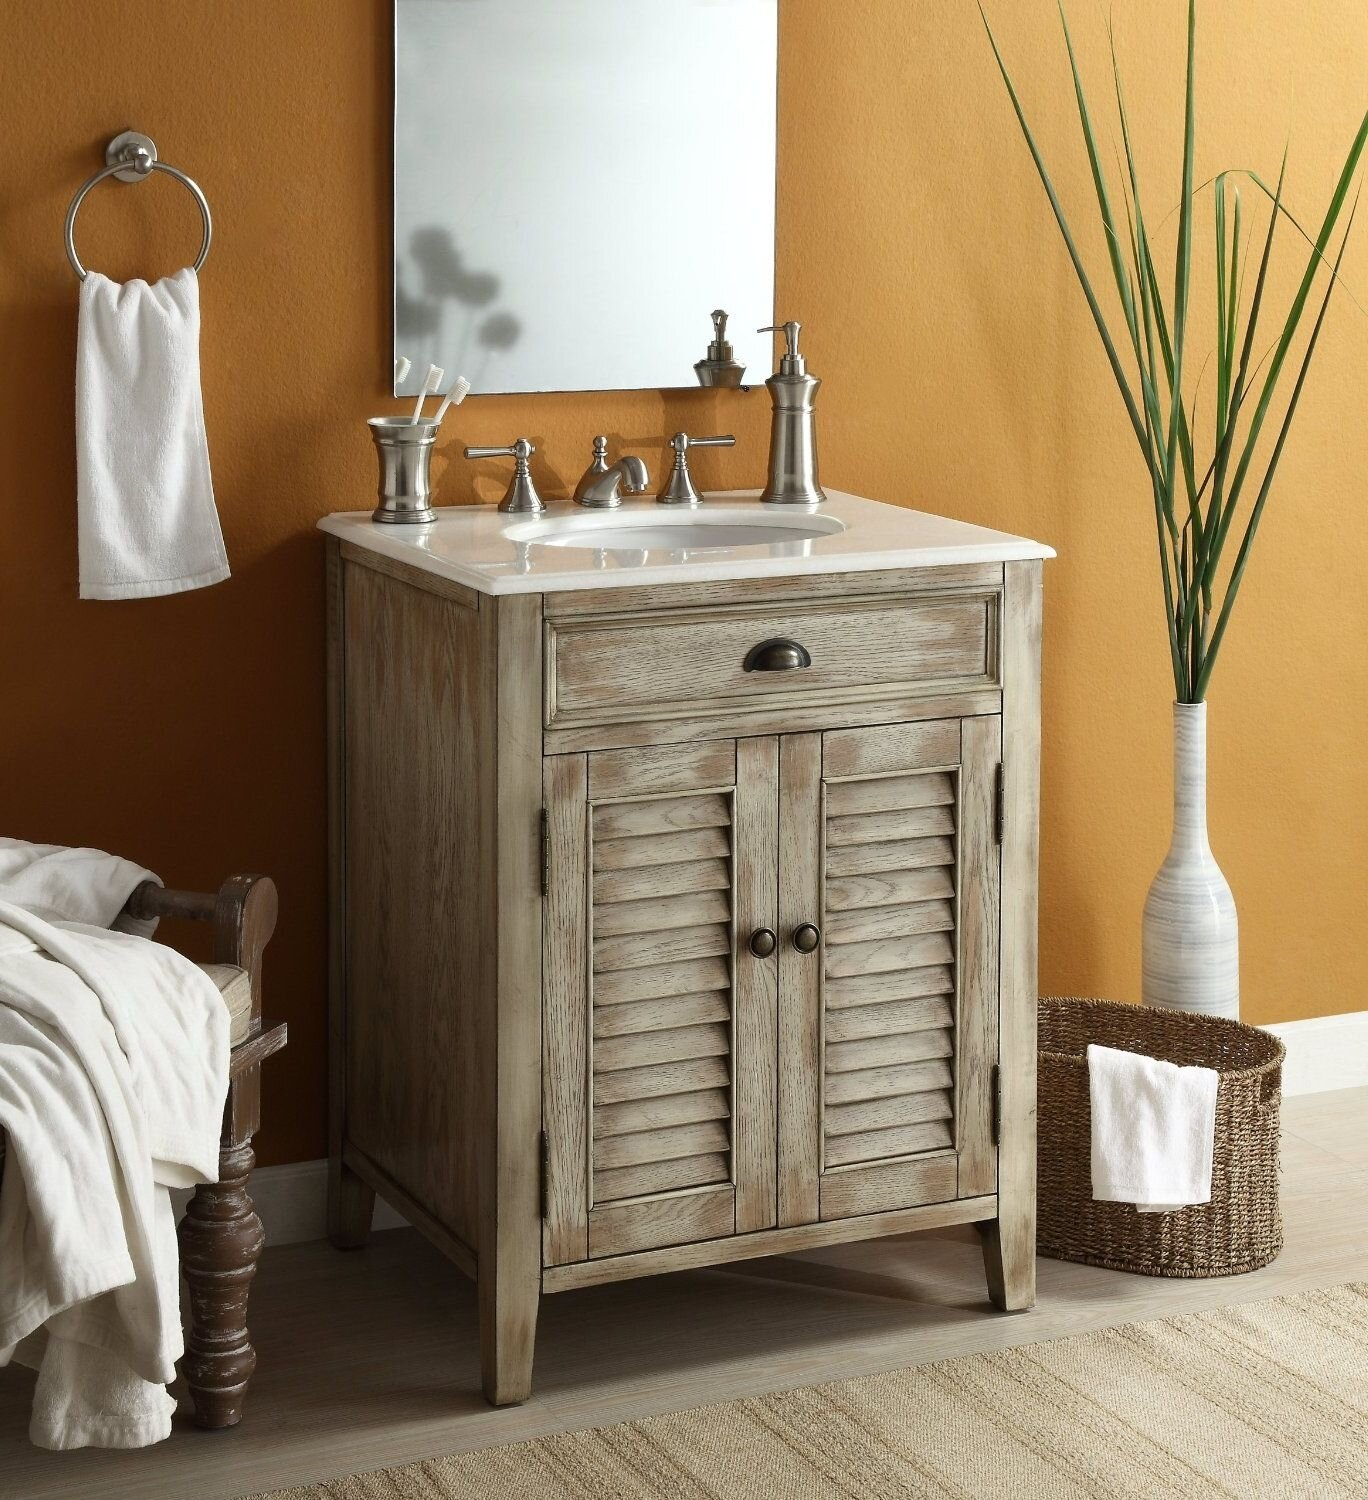 Pottery Barn Sinks | Pottery Barn Bath Vanities | Pottery Barn Vanity